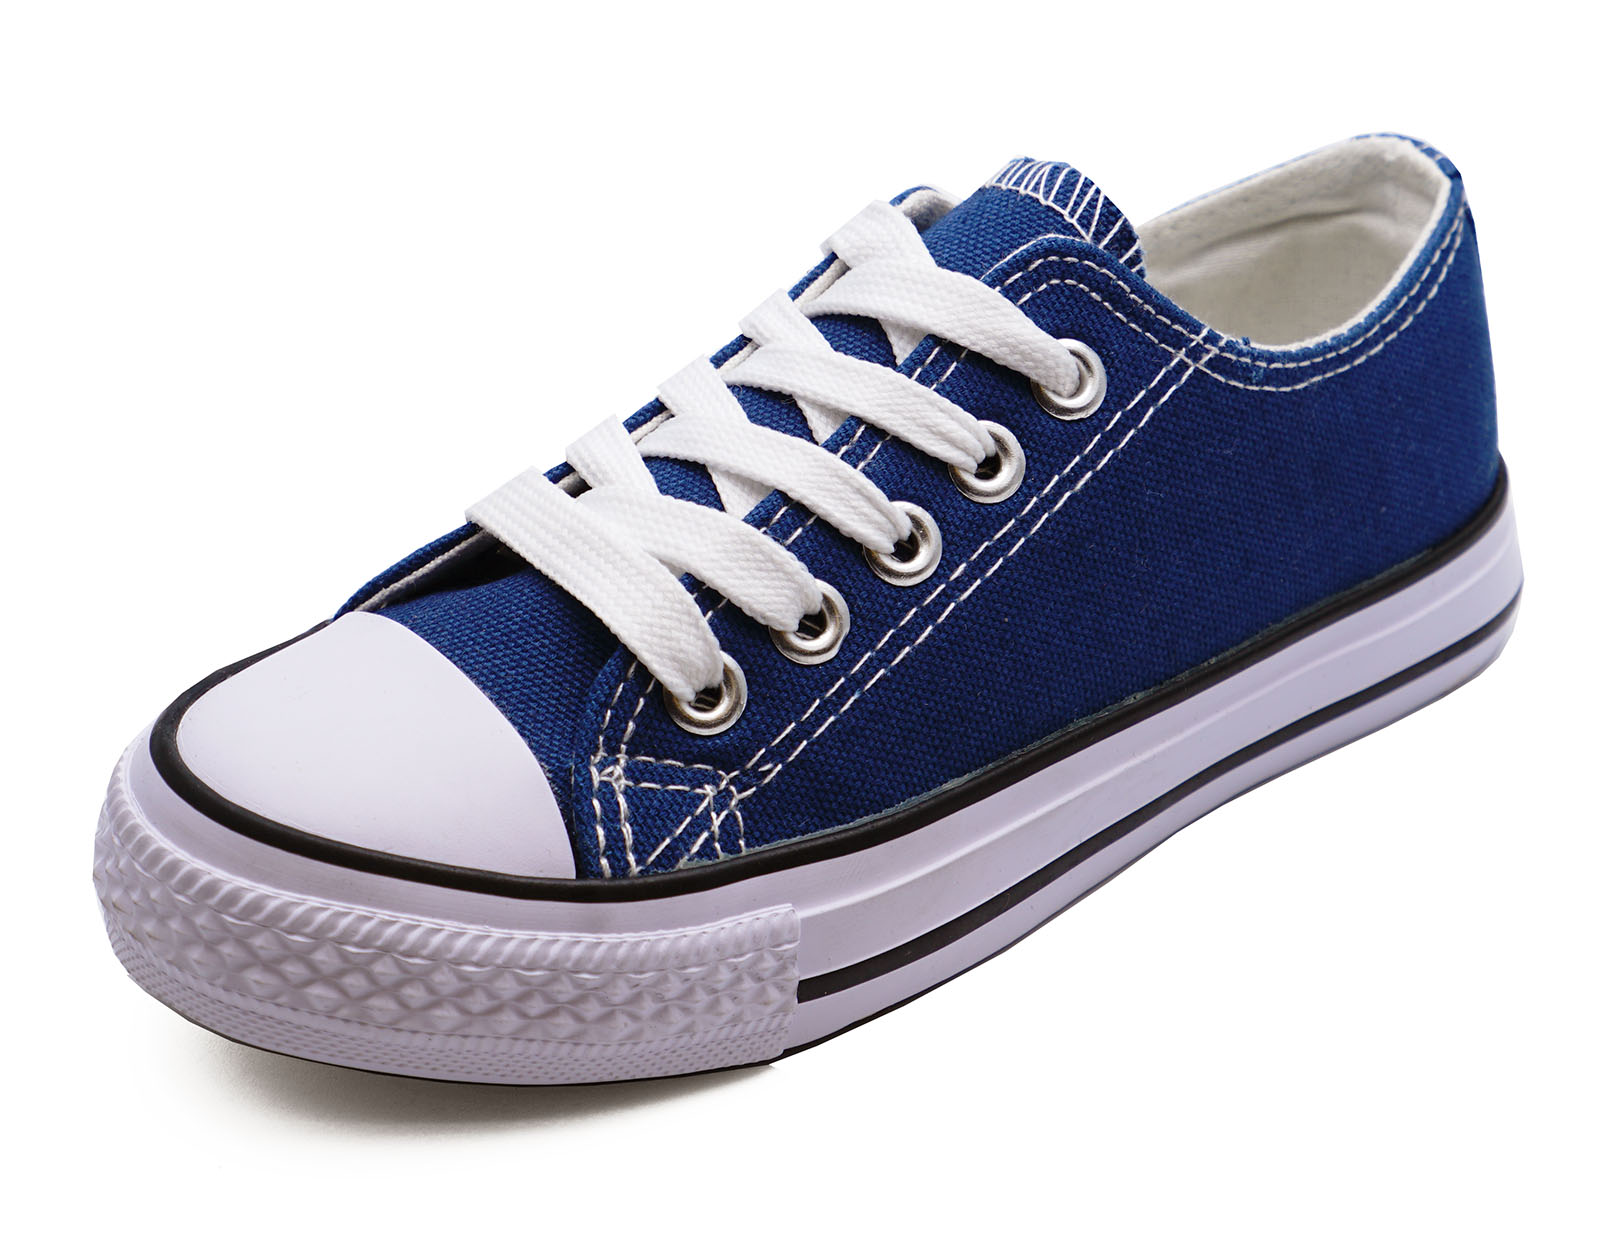 GIRLS BOYS KIDS CHILDRENS NAVY CANVAS LACE-UP PLIMSOLL PUMPS CASUAL SHOES UK 9-1